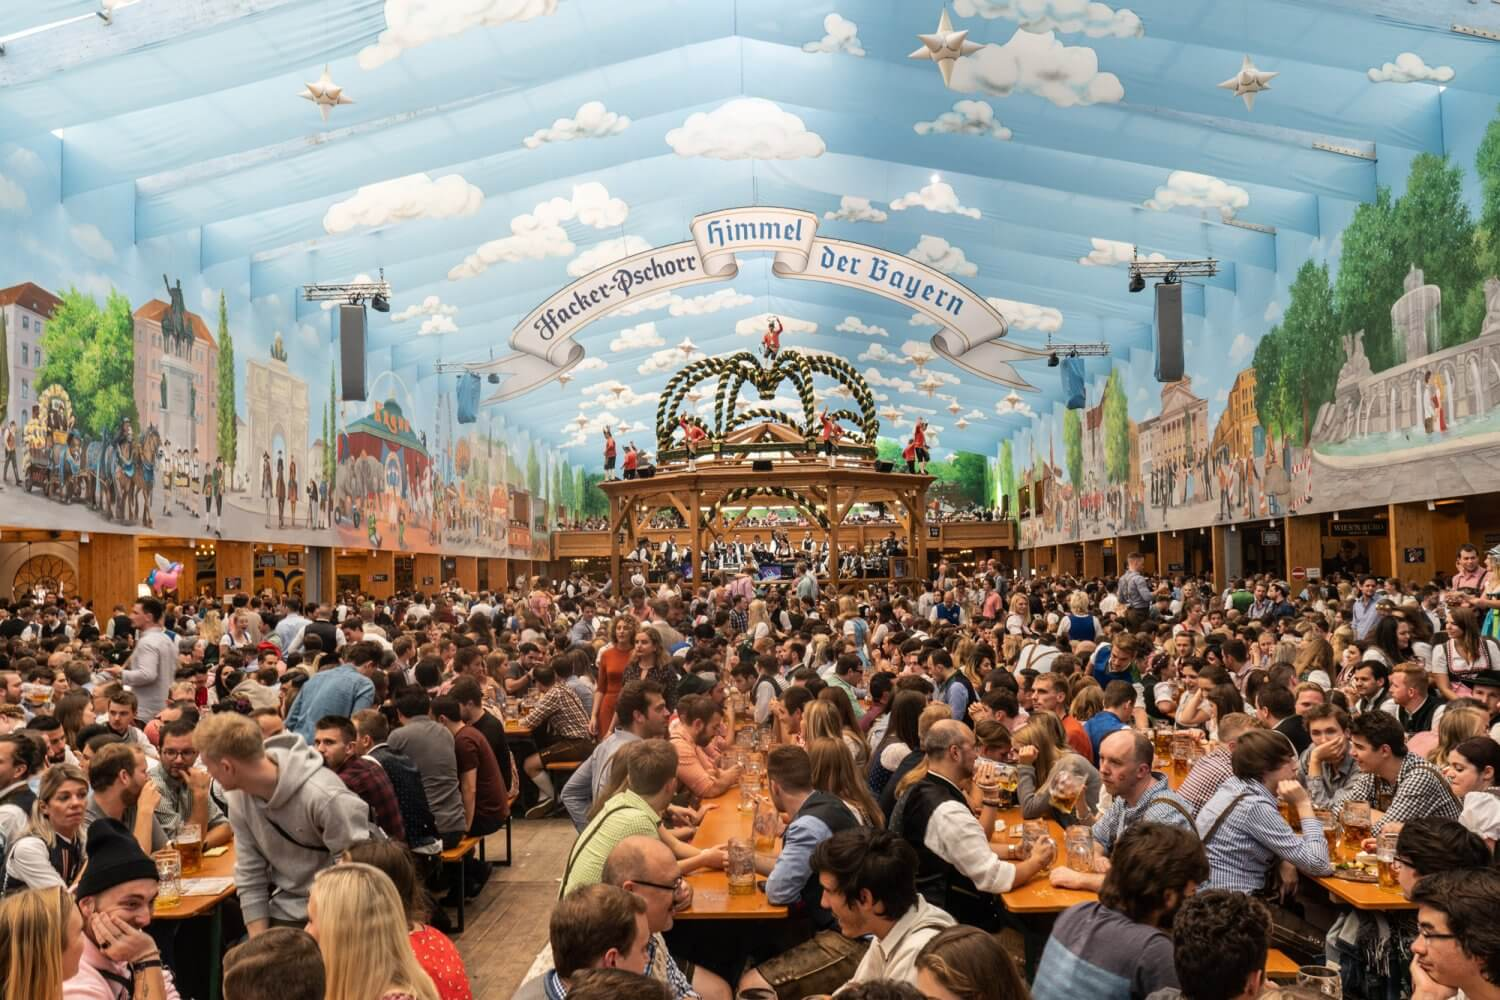 Hacker Pschorr tent at Oktoberfest